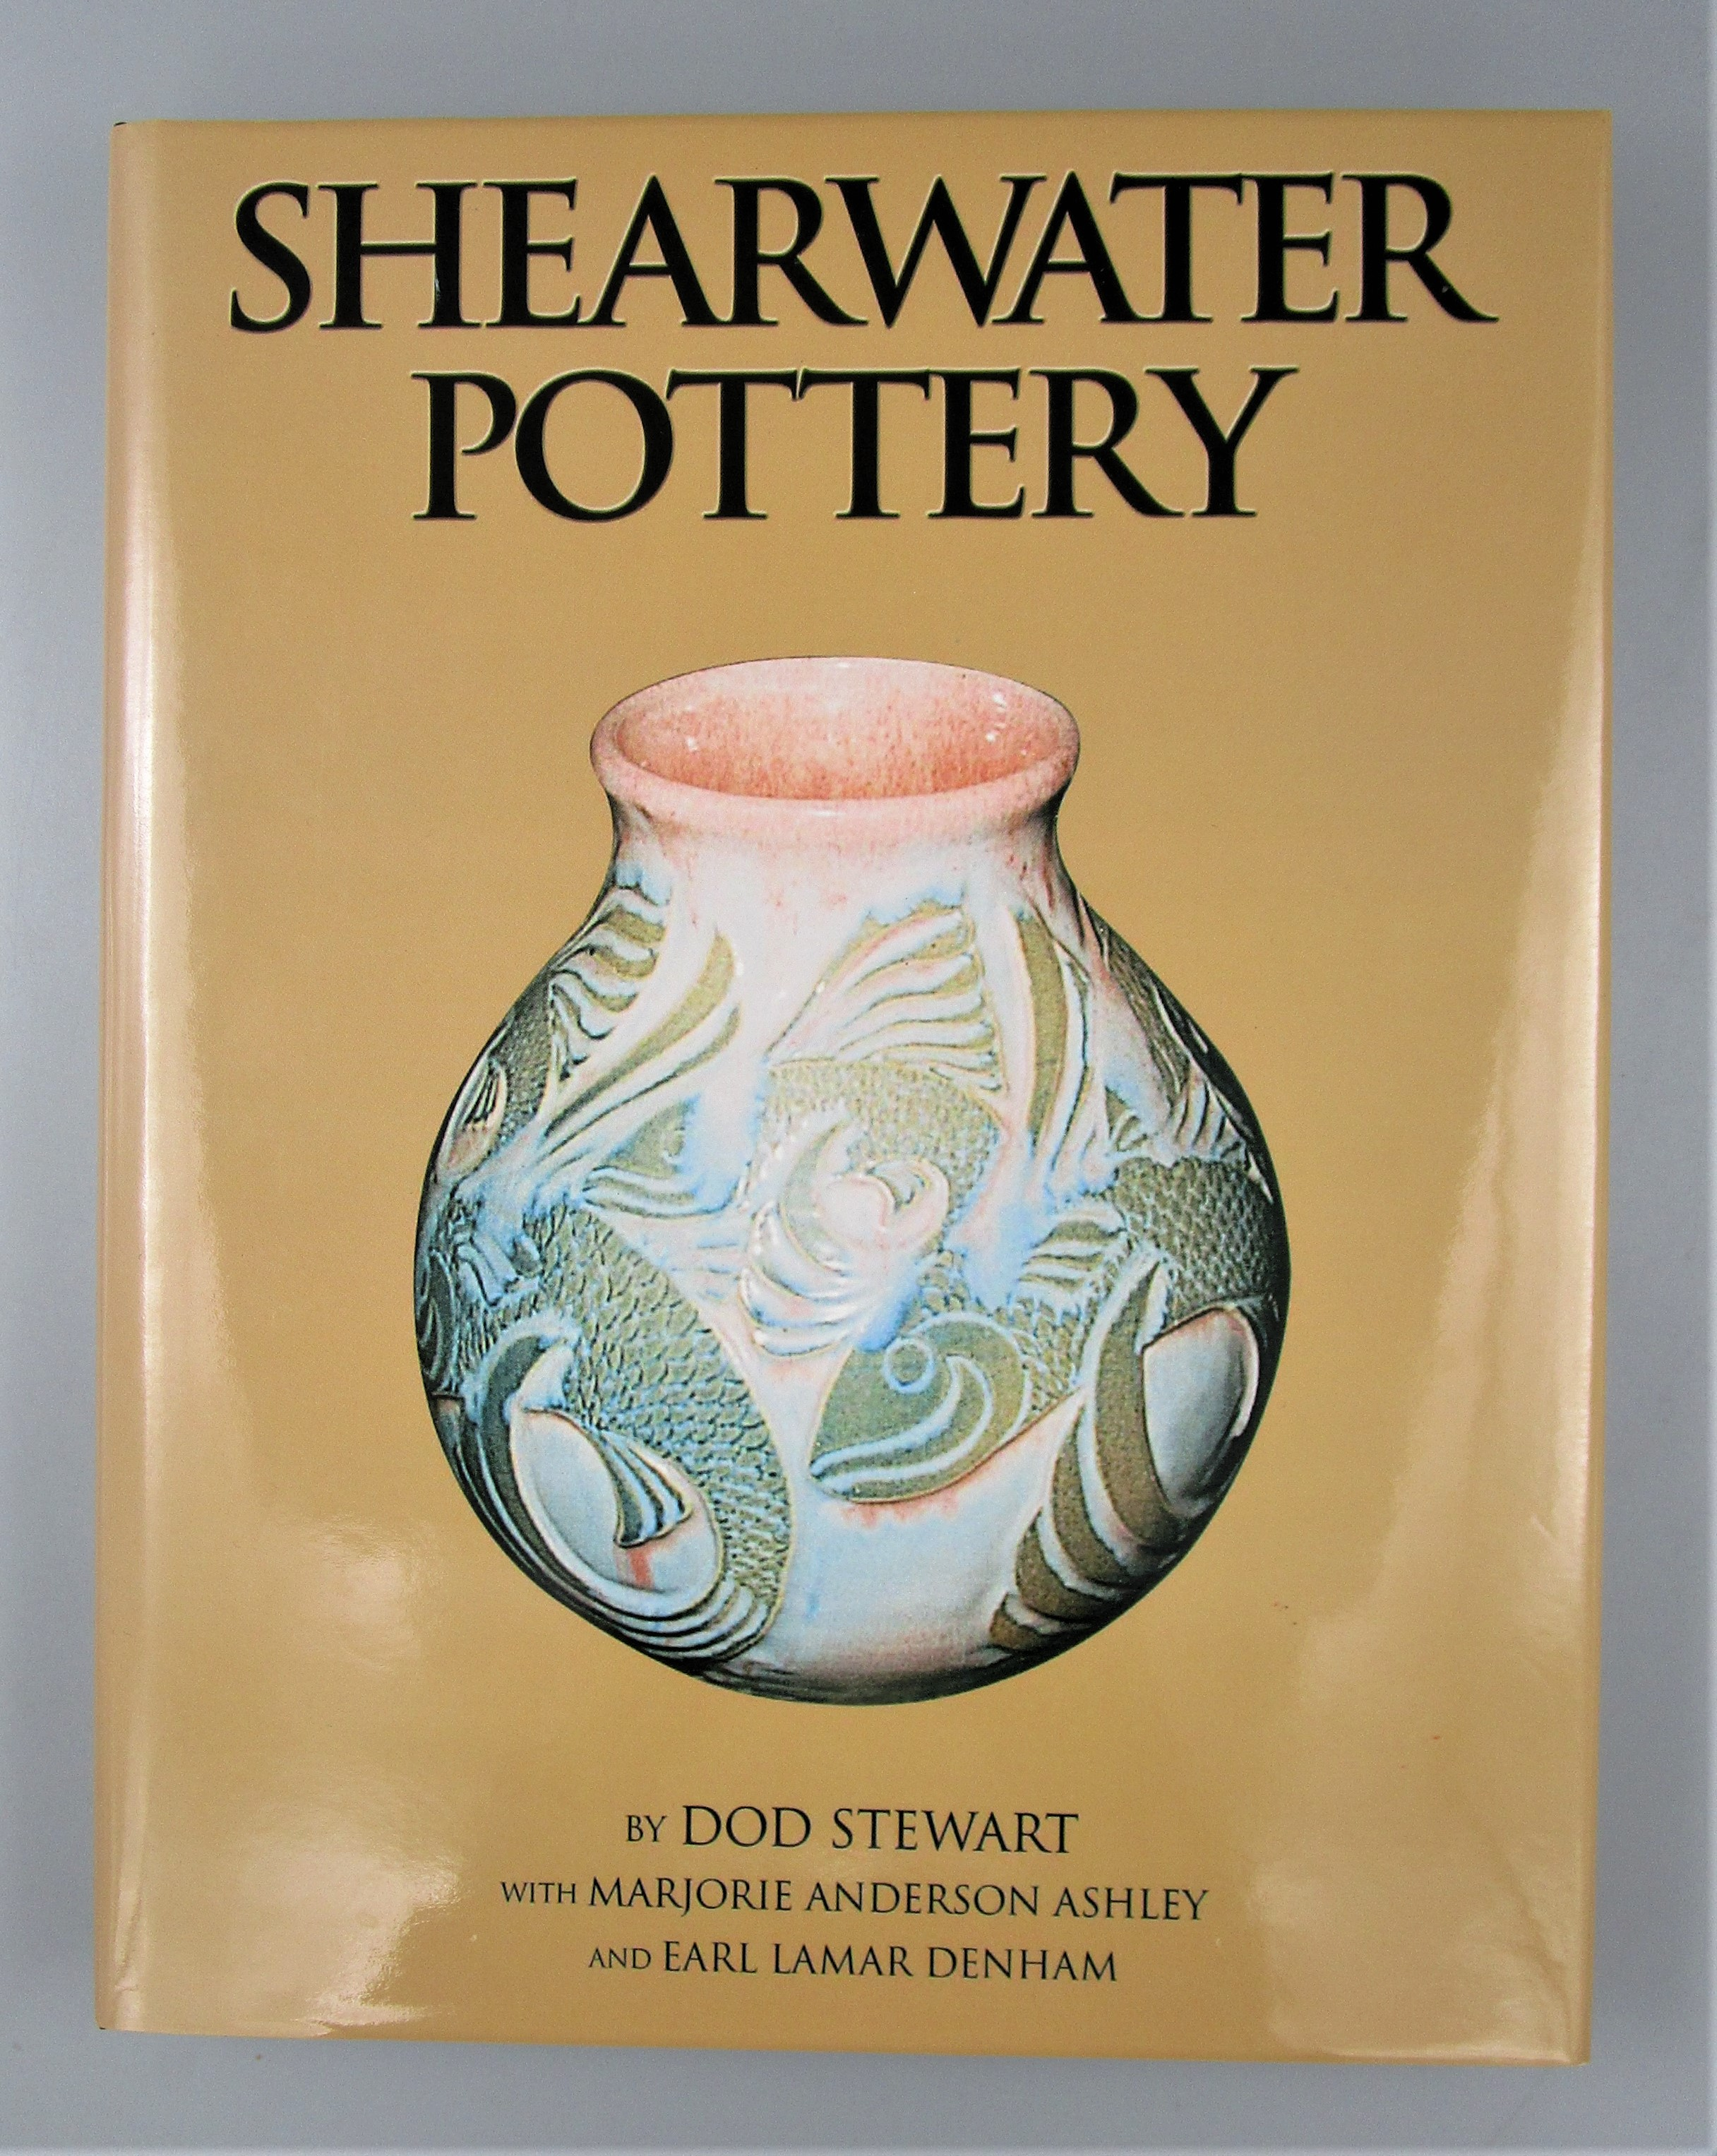 SHEARWATER POTTERY, by Dod Stewart - 2005 [Signed]